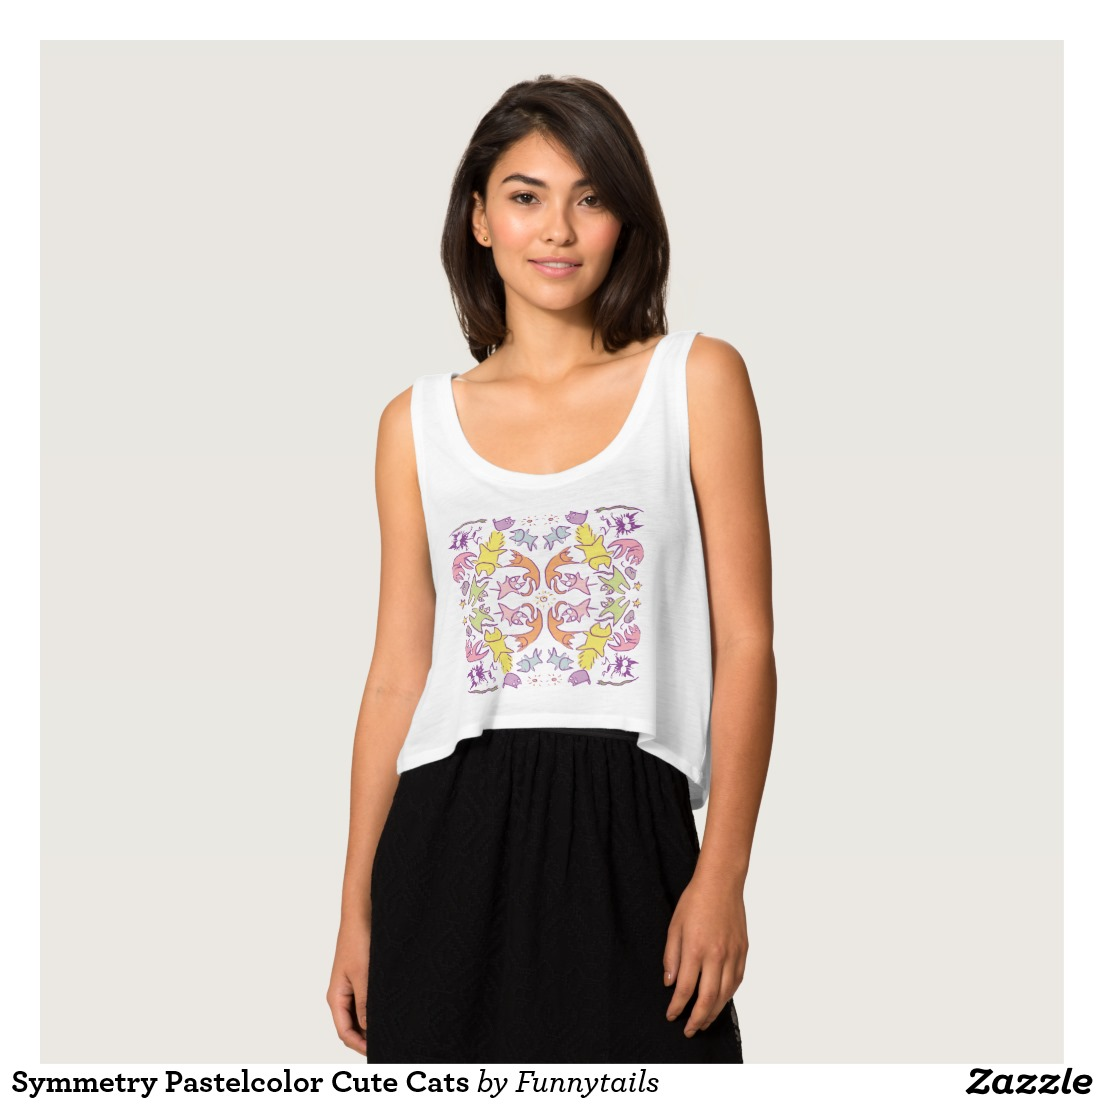 symmetry-pastelcolor-cute-cats-tank-top3